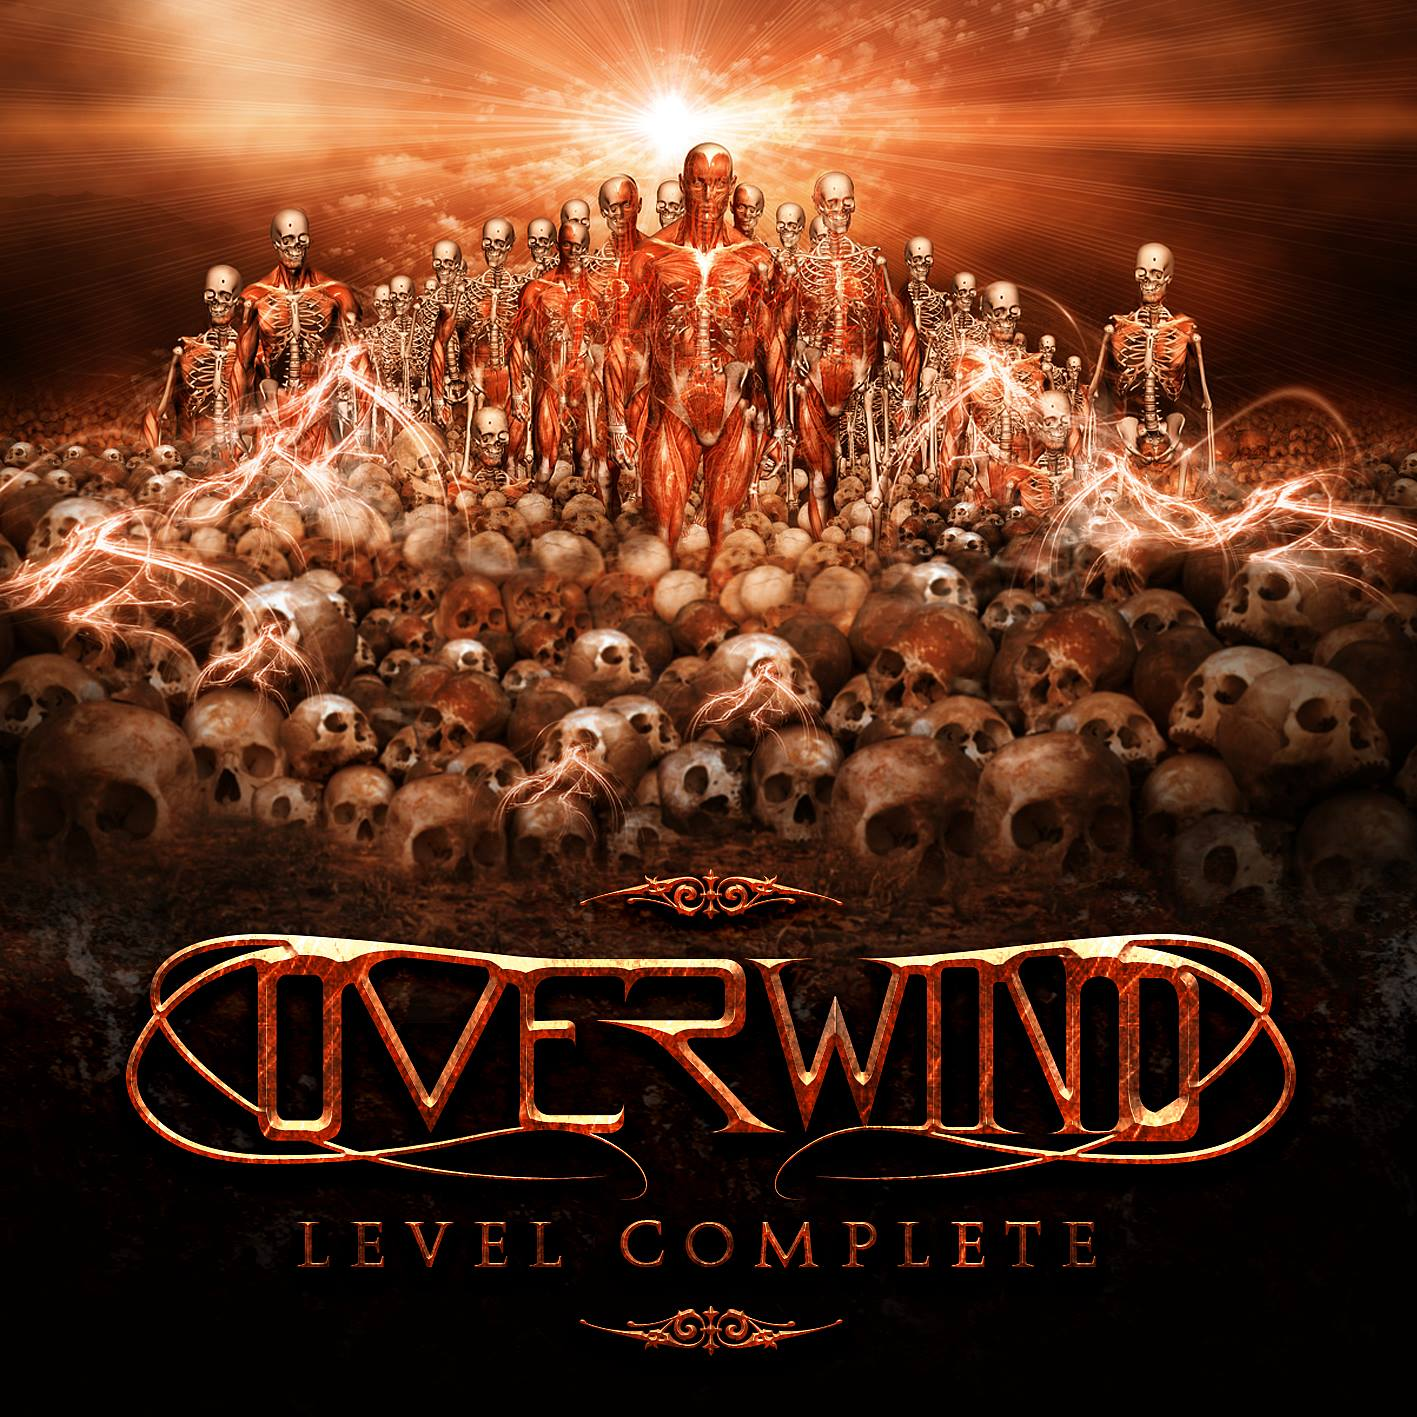 OVERWIND signs with POWER PROG